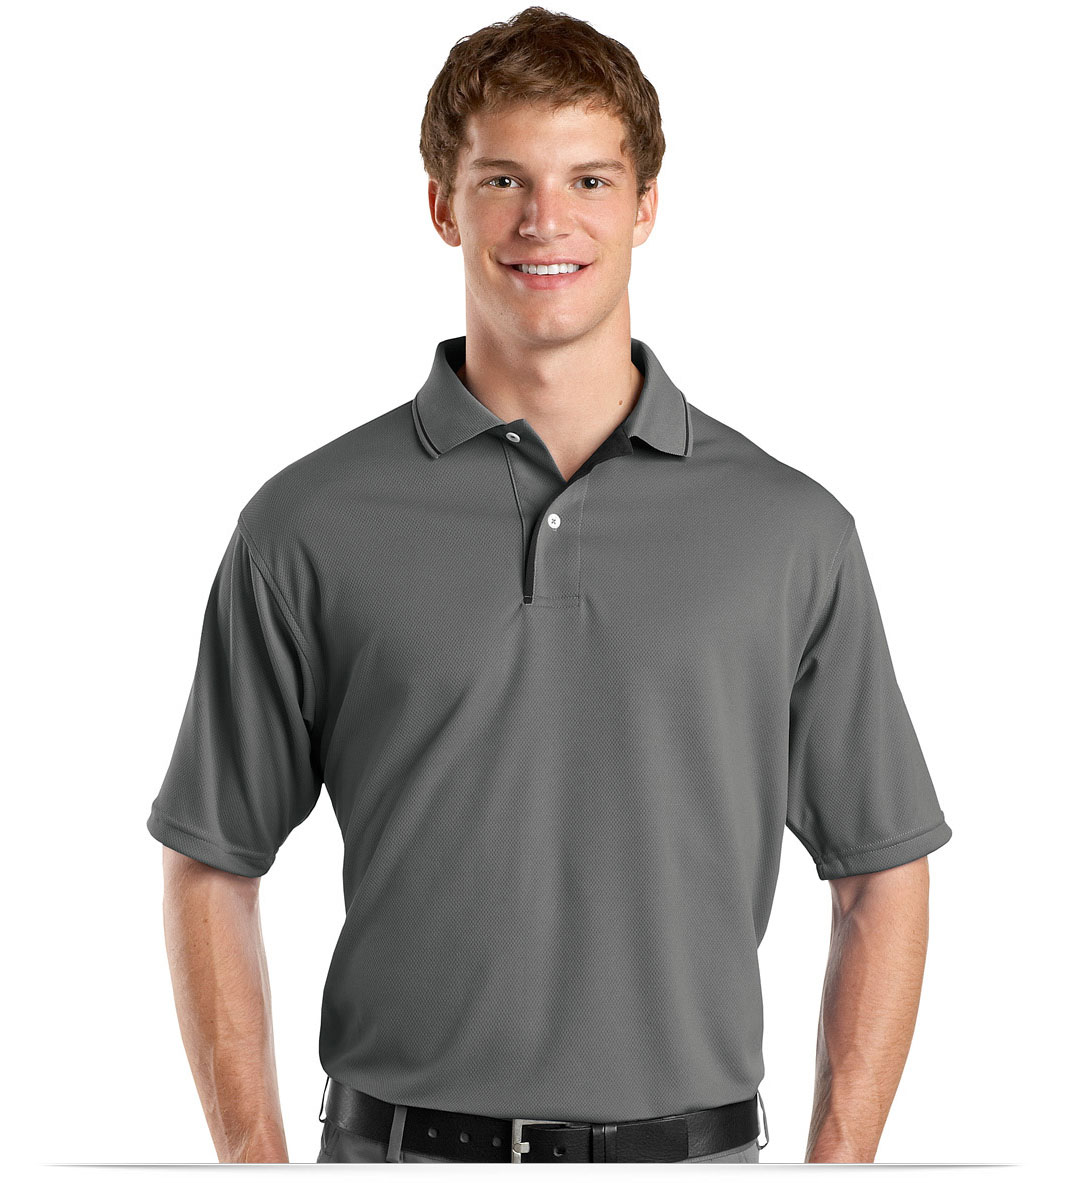 Customize Dri-Mesh Performance Polo shirt with Striped Collar